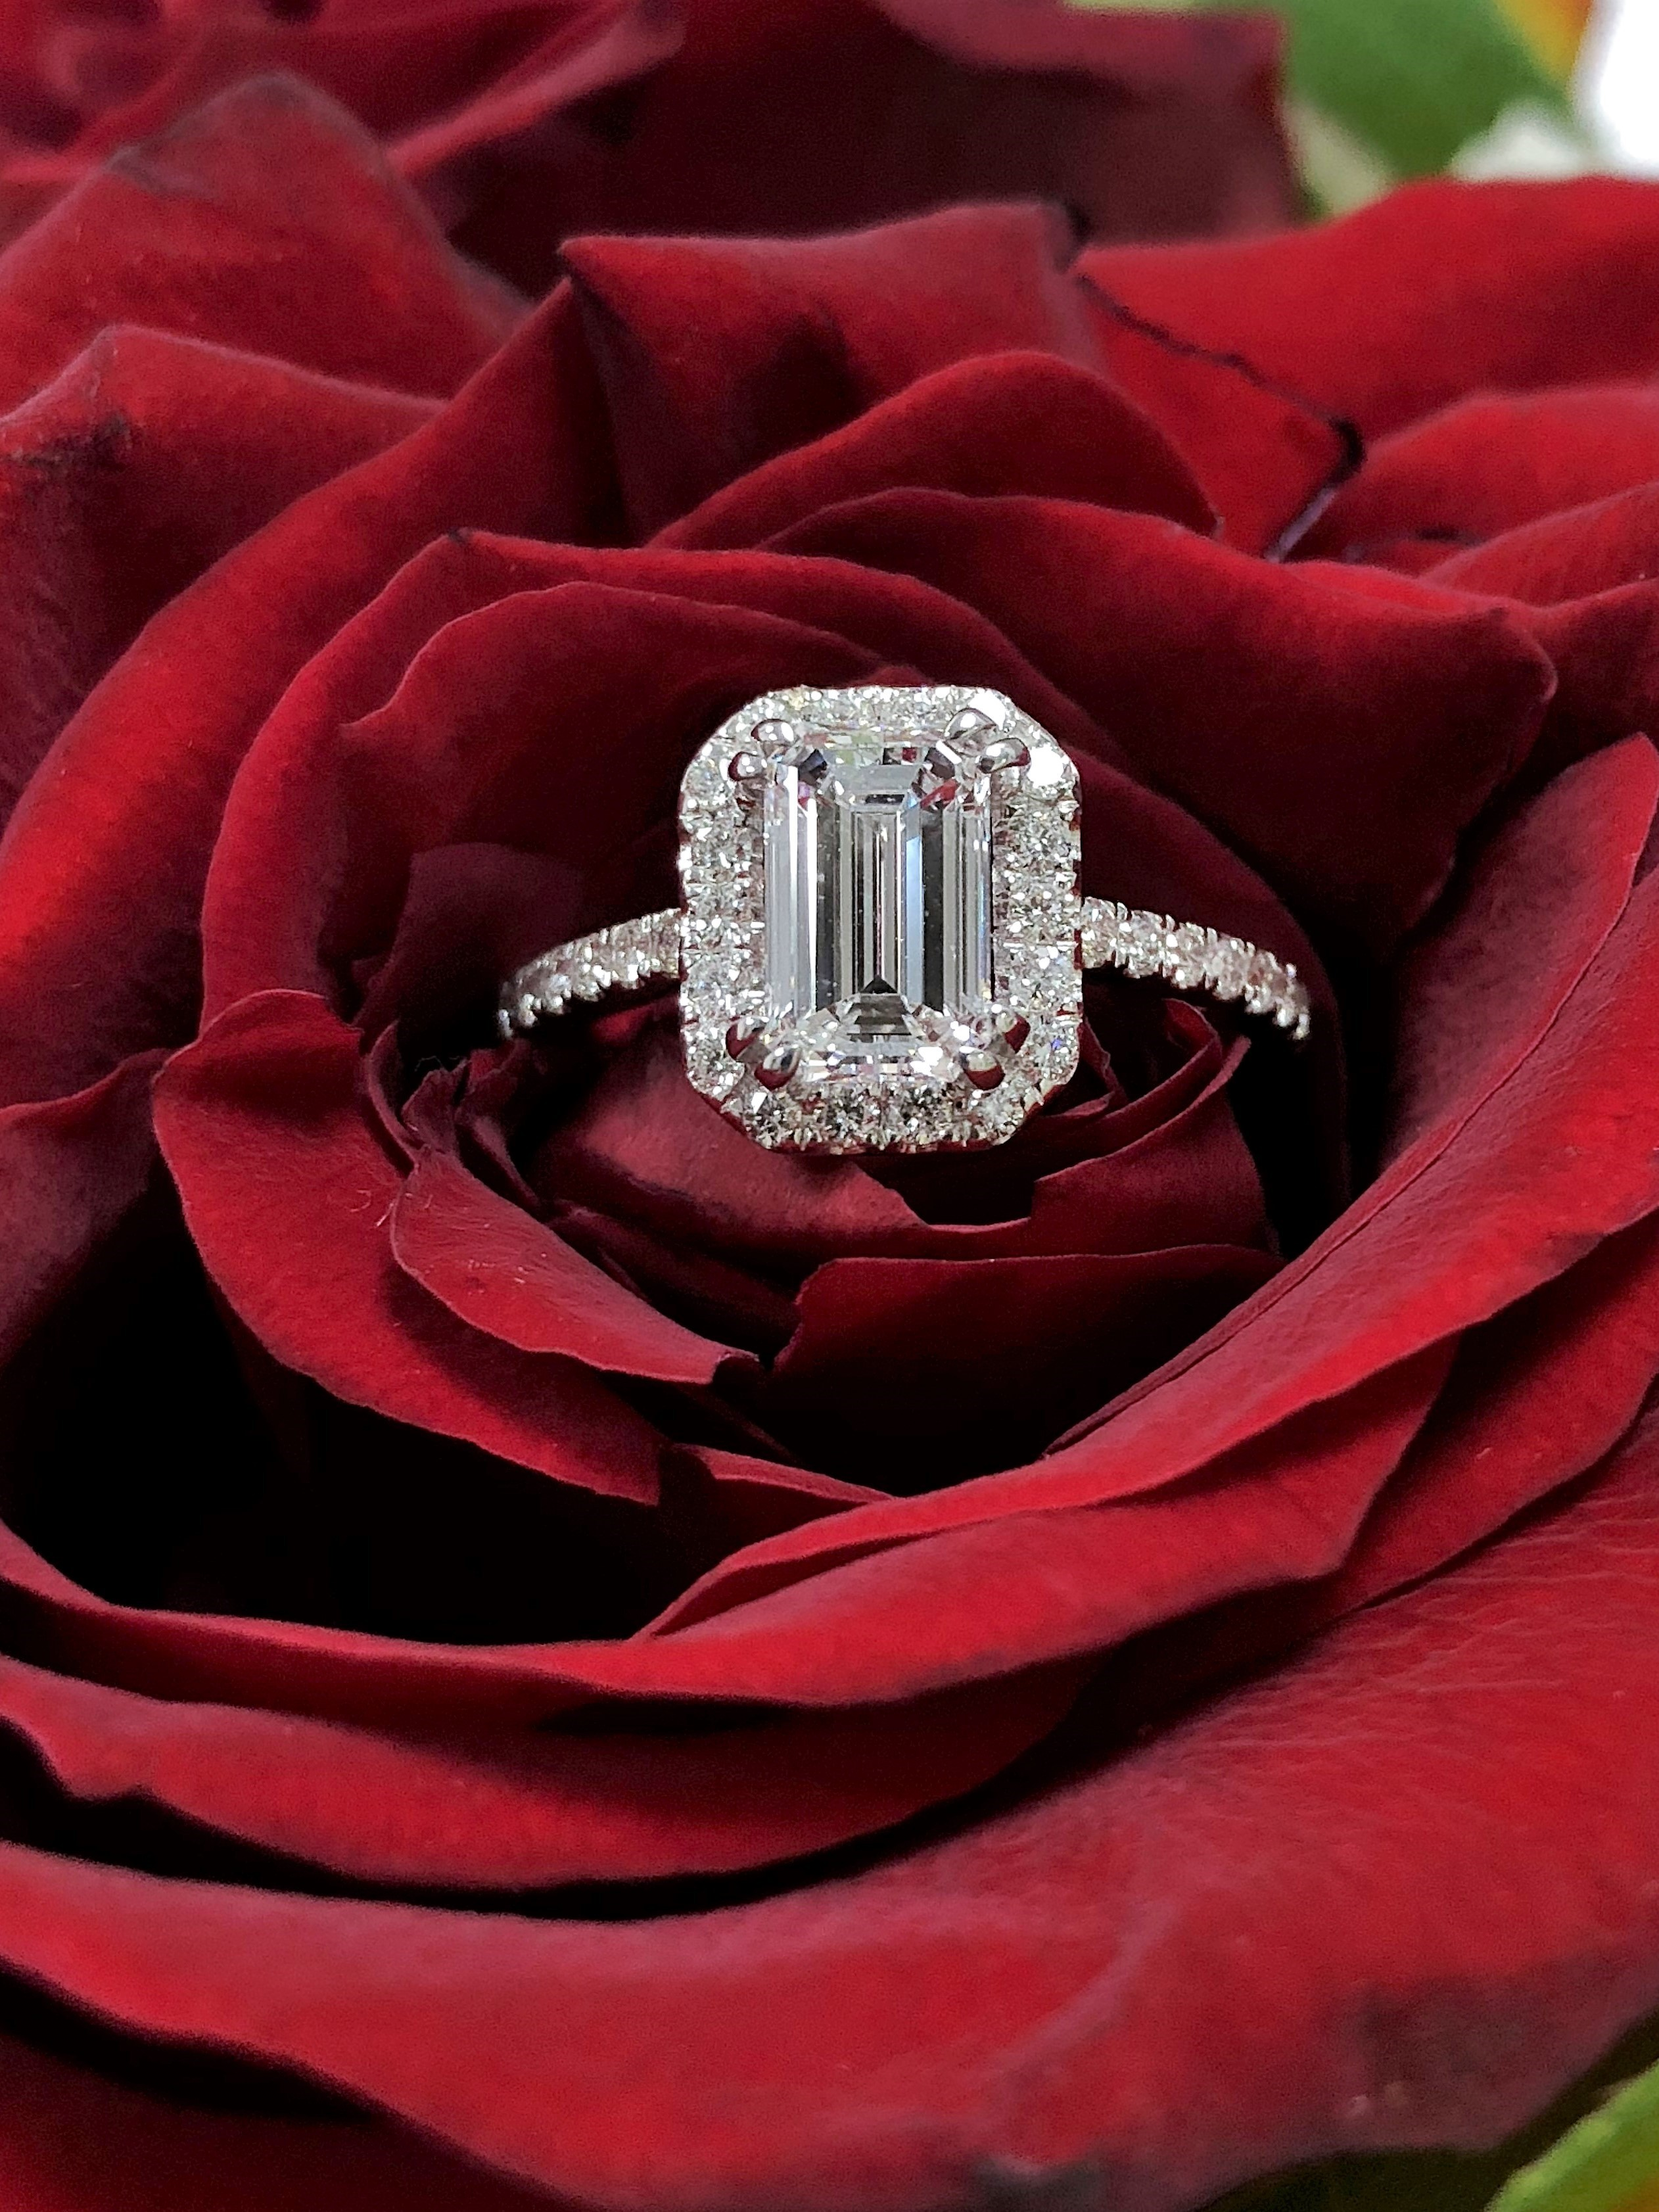 GIA certified 1.15 carat Halo Emerald cut diamond ring